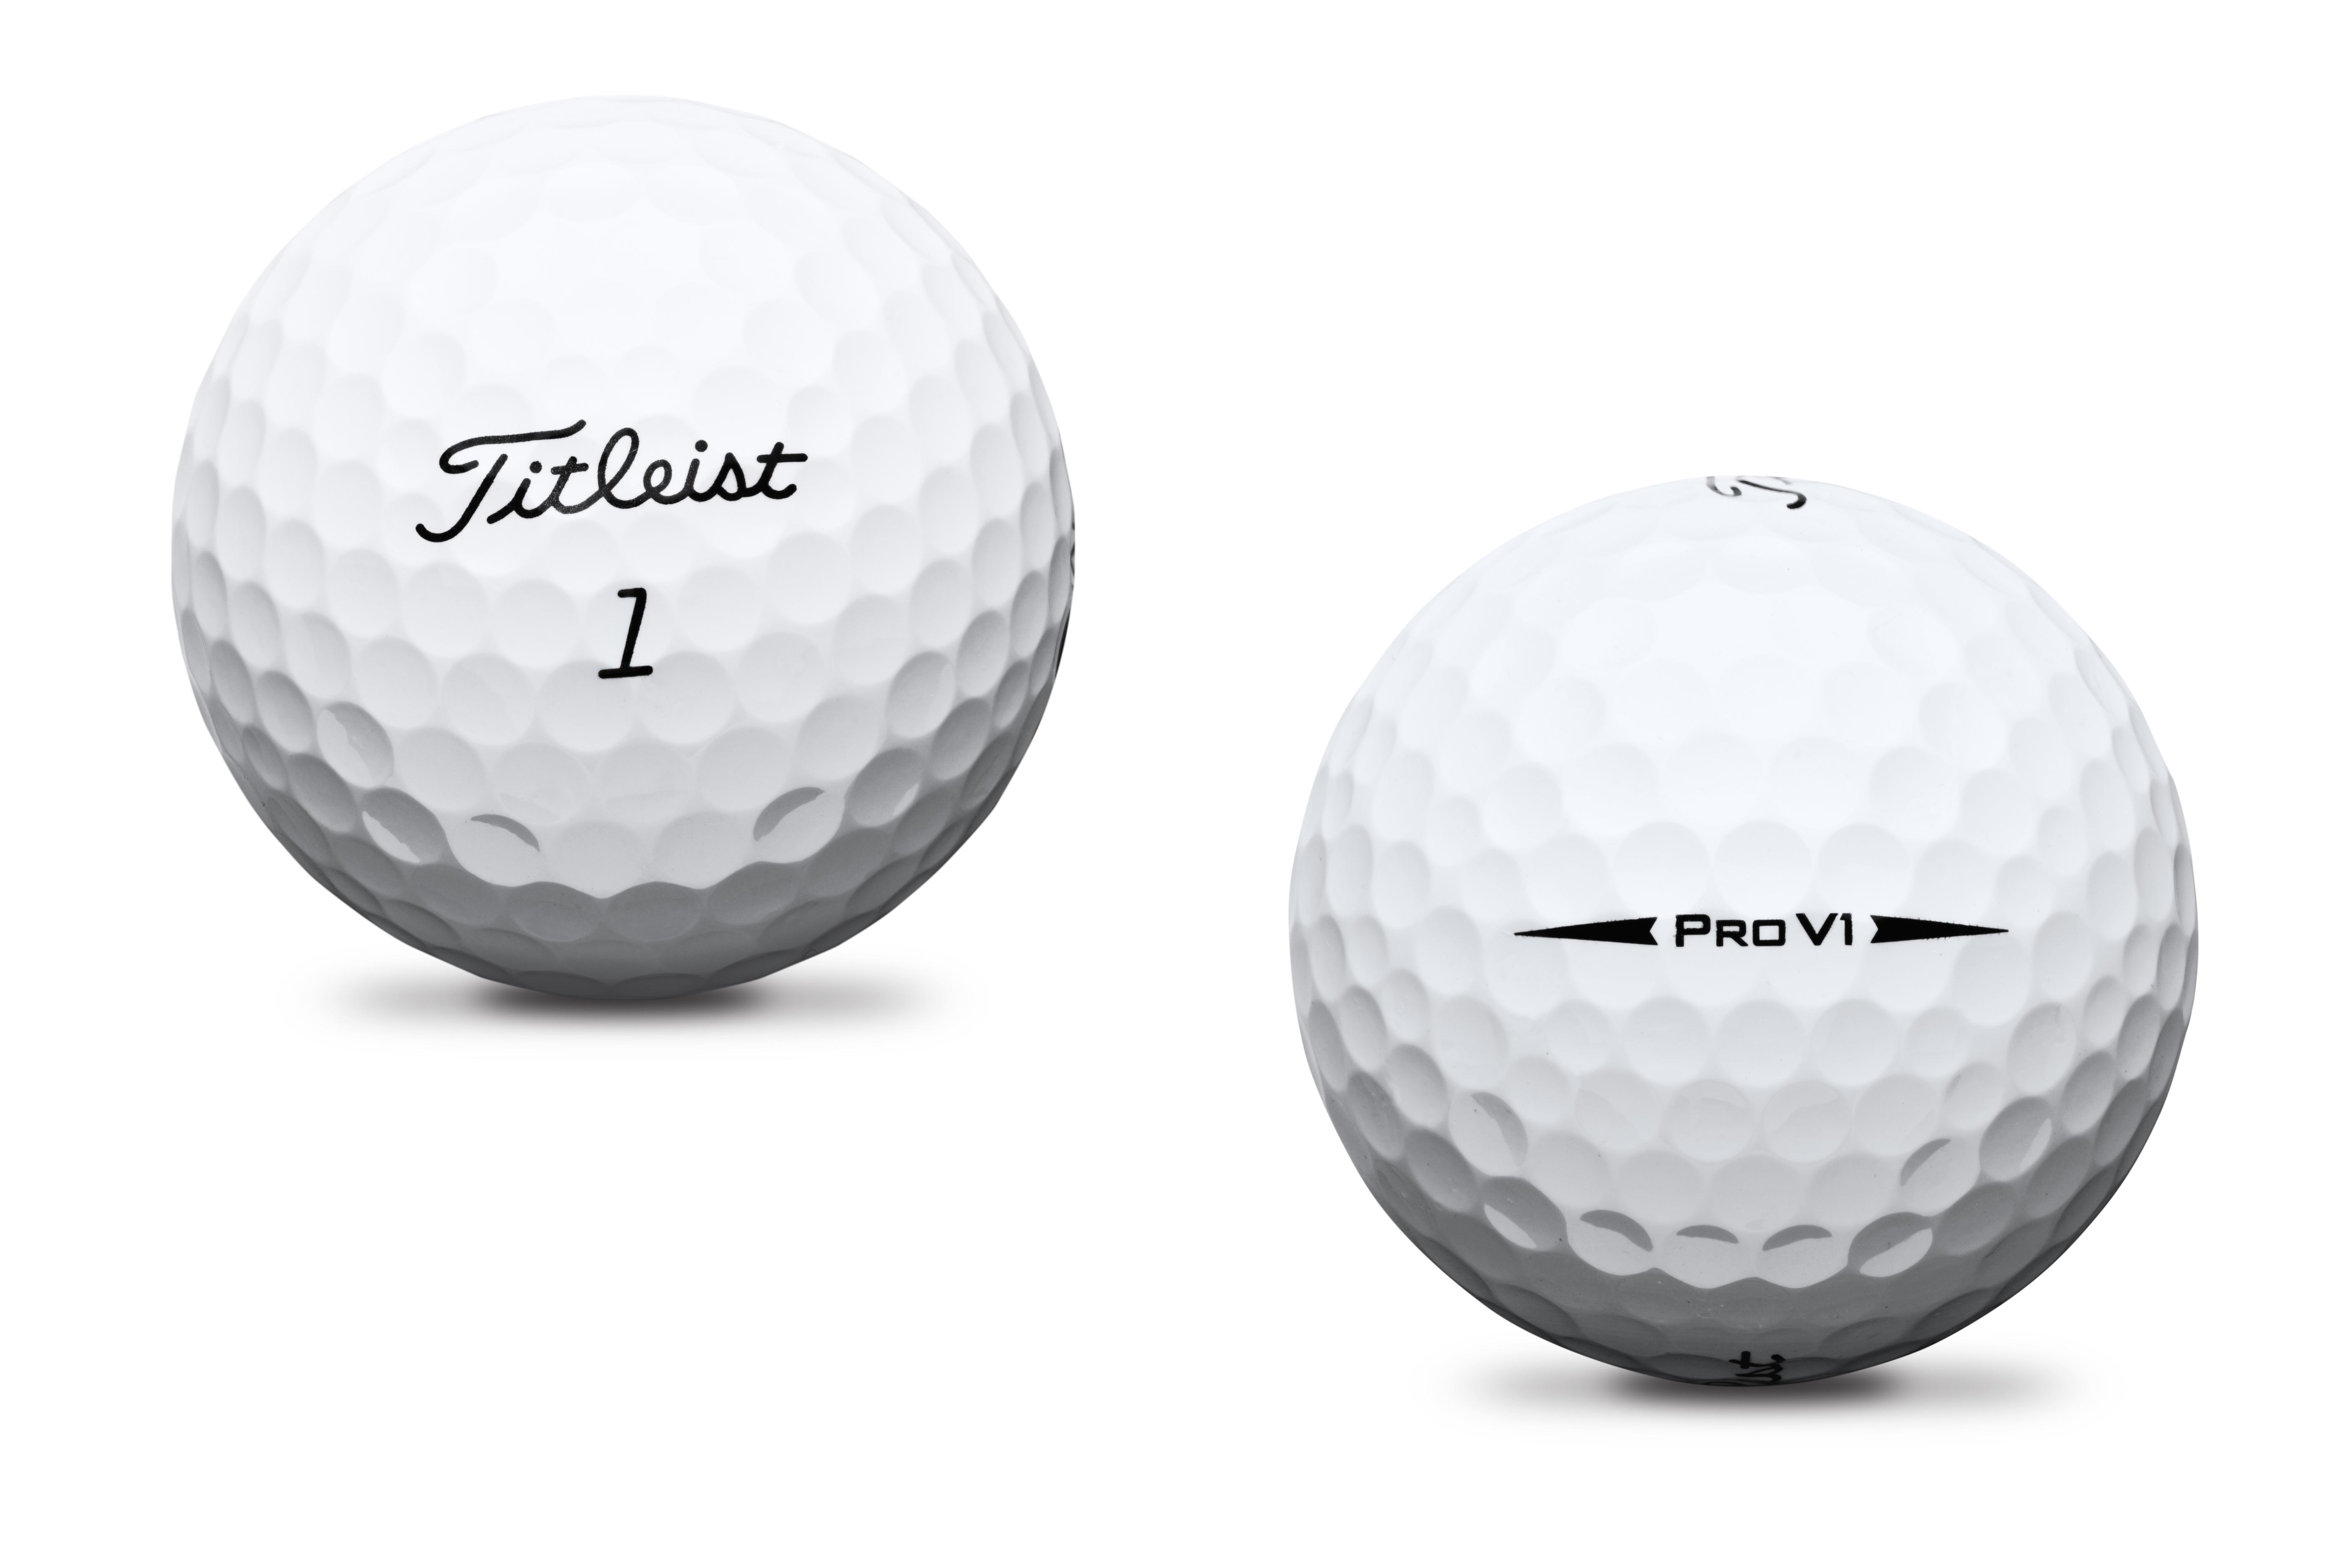 how to tell what year a pro v1 was made